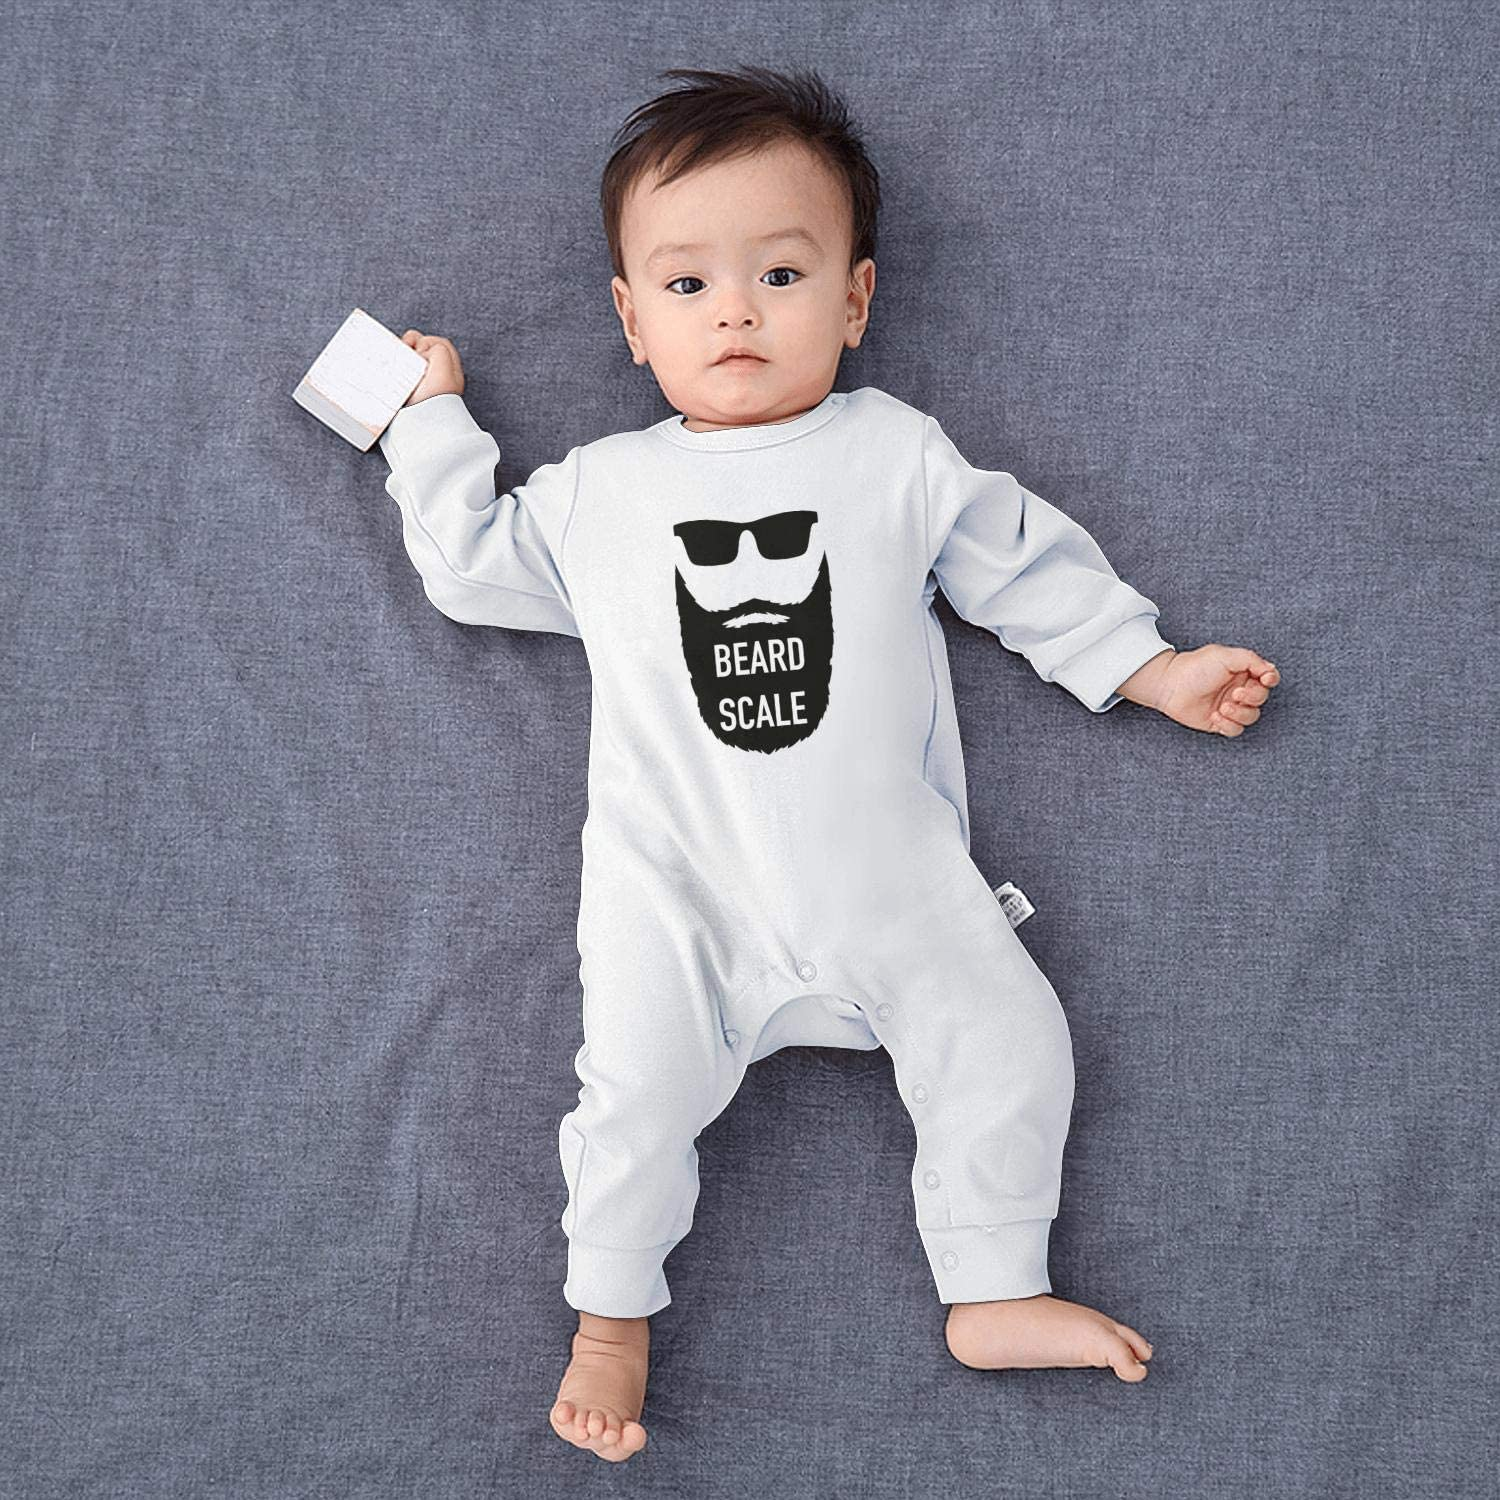 GFJHBVNBVC Bear Go Surfing Awesome Baby Crawling Suit Lone-Sleeved Romper Bodysuit